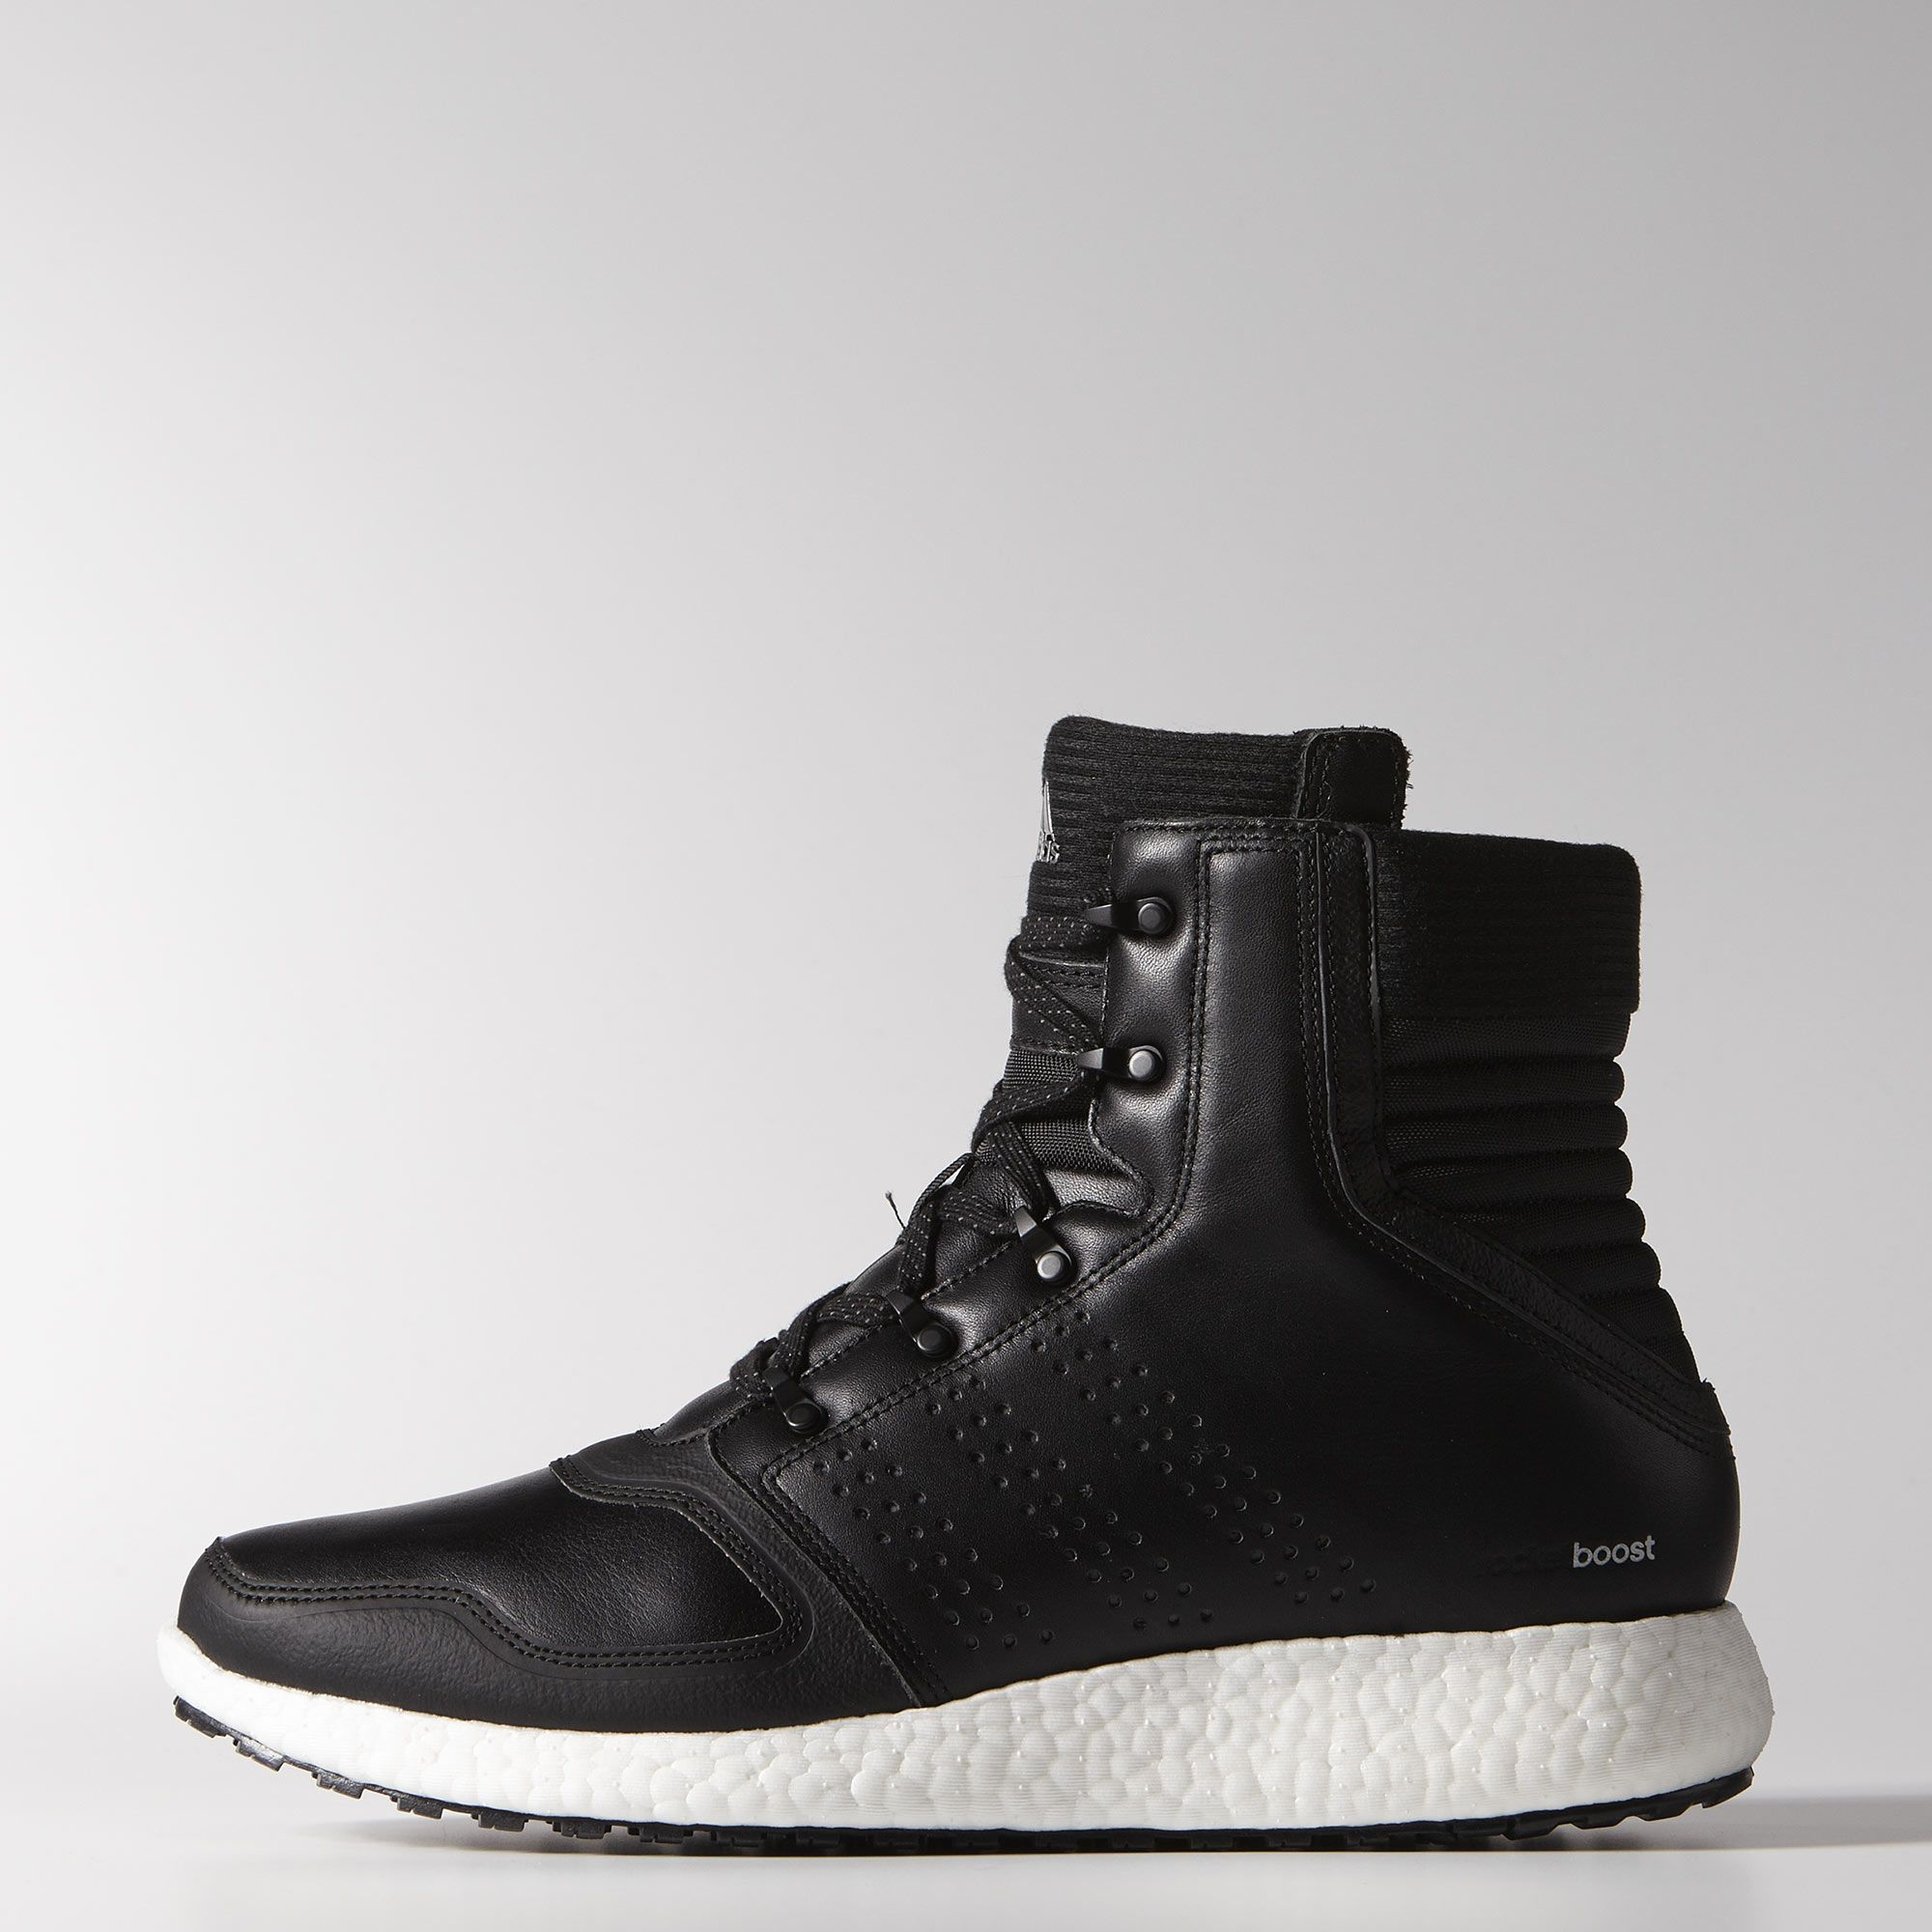 adidas Climaheat Rocket Boost Boot 'Black' in 2019 | Sneaker